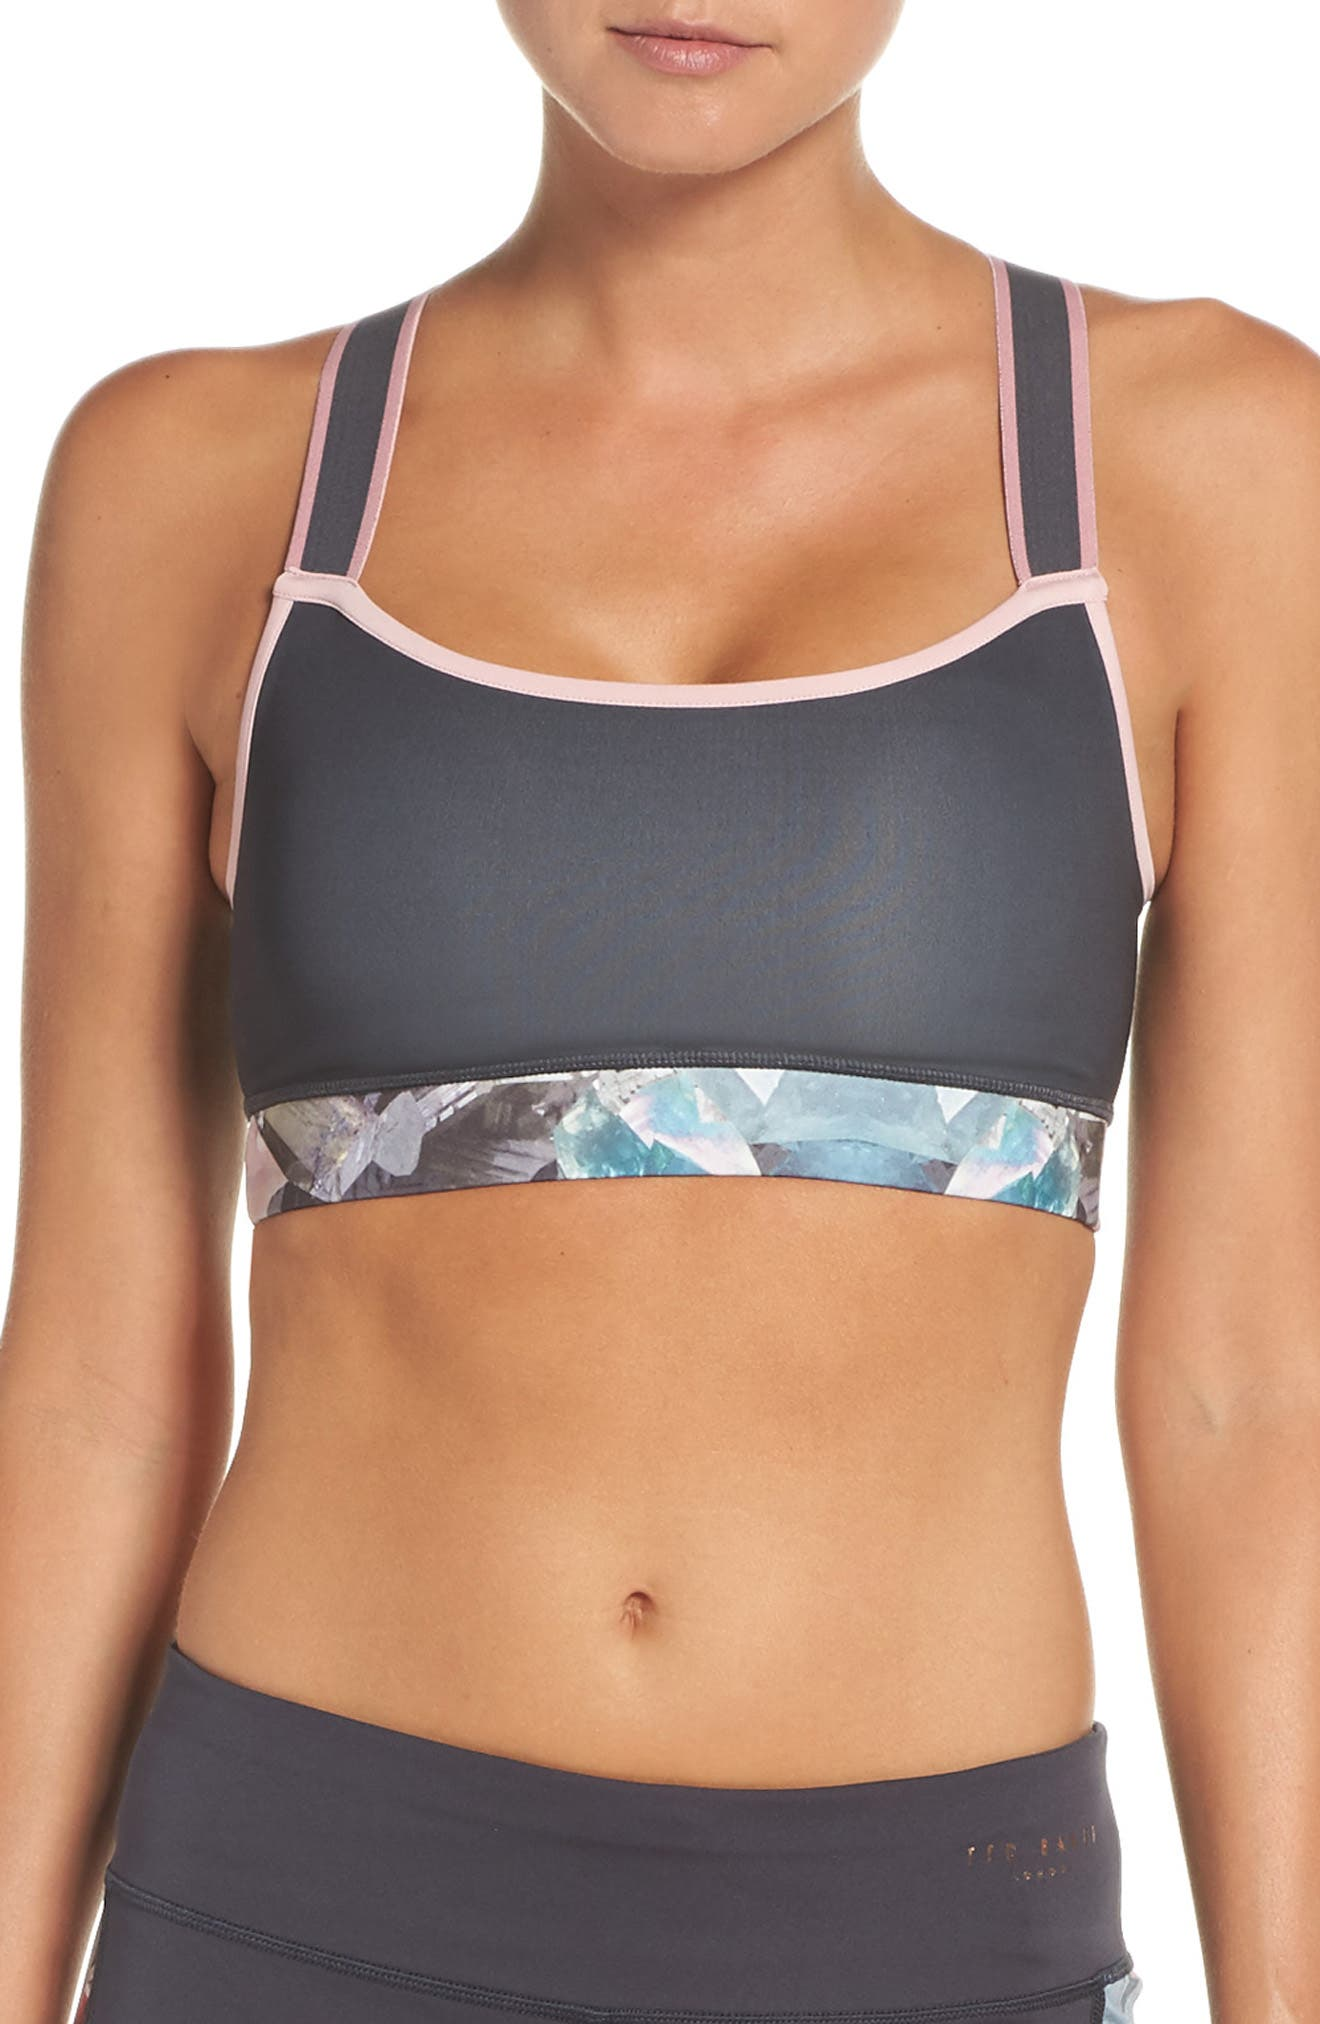 Mineral Sports Bra,                         Main,                         color, Mid Grey